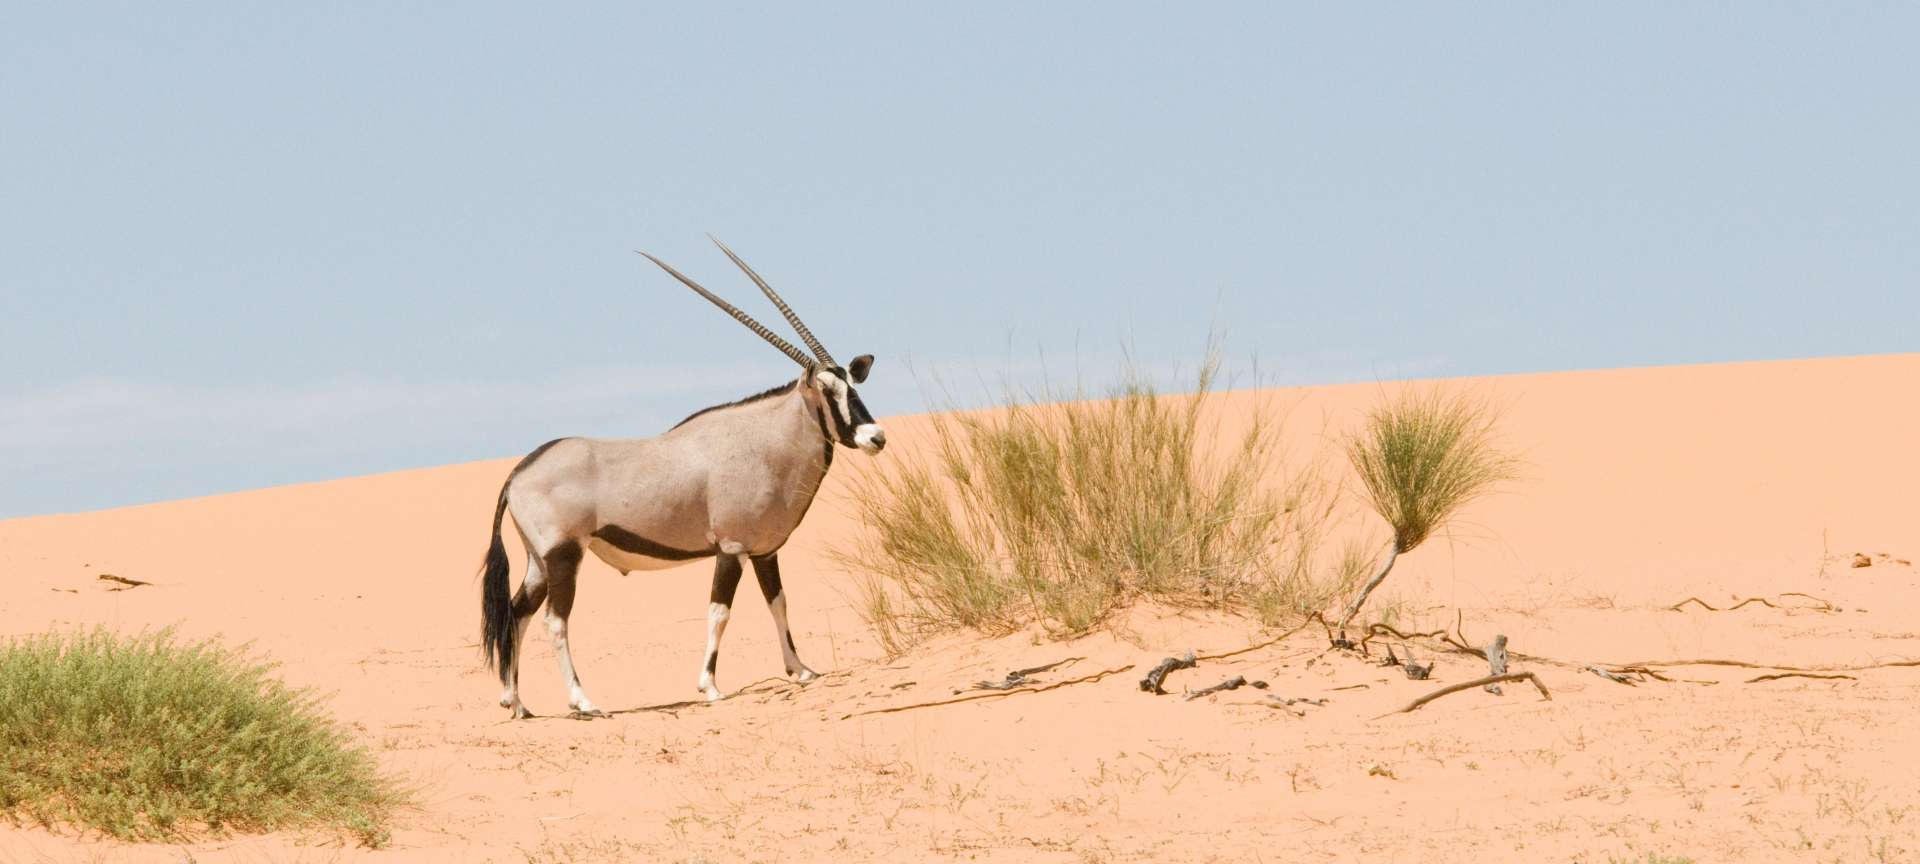 The oryx strikes a formidable pose against the backdrop of the Kalahari Desert